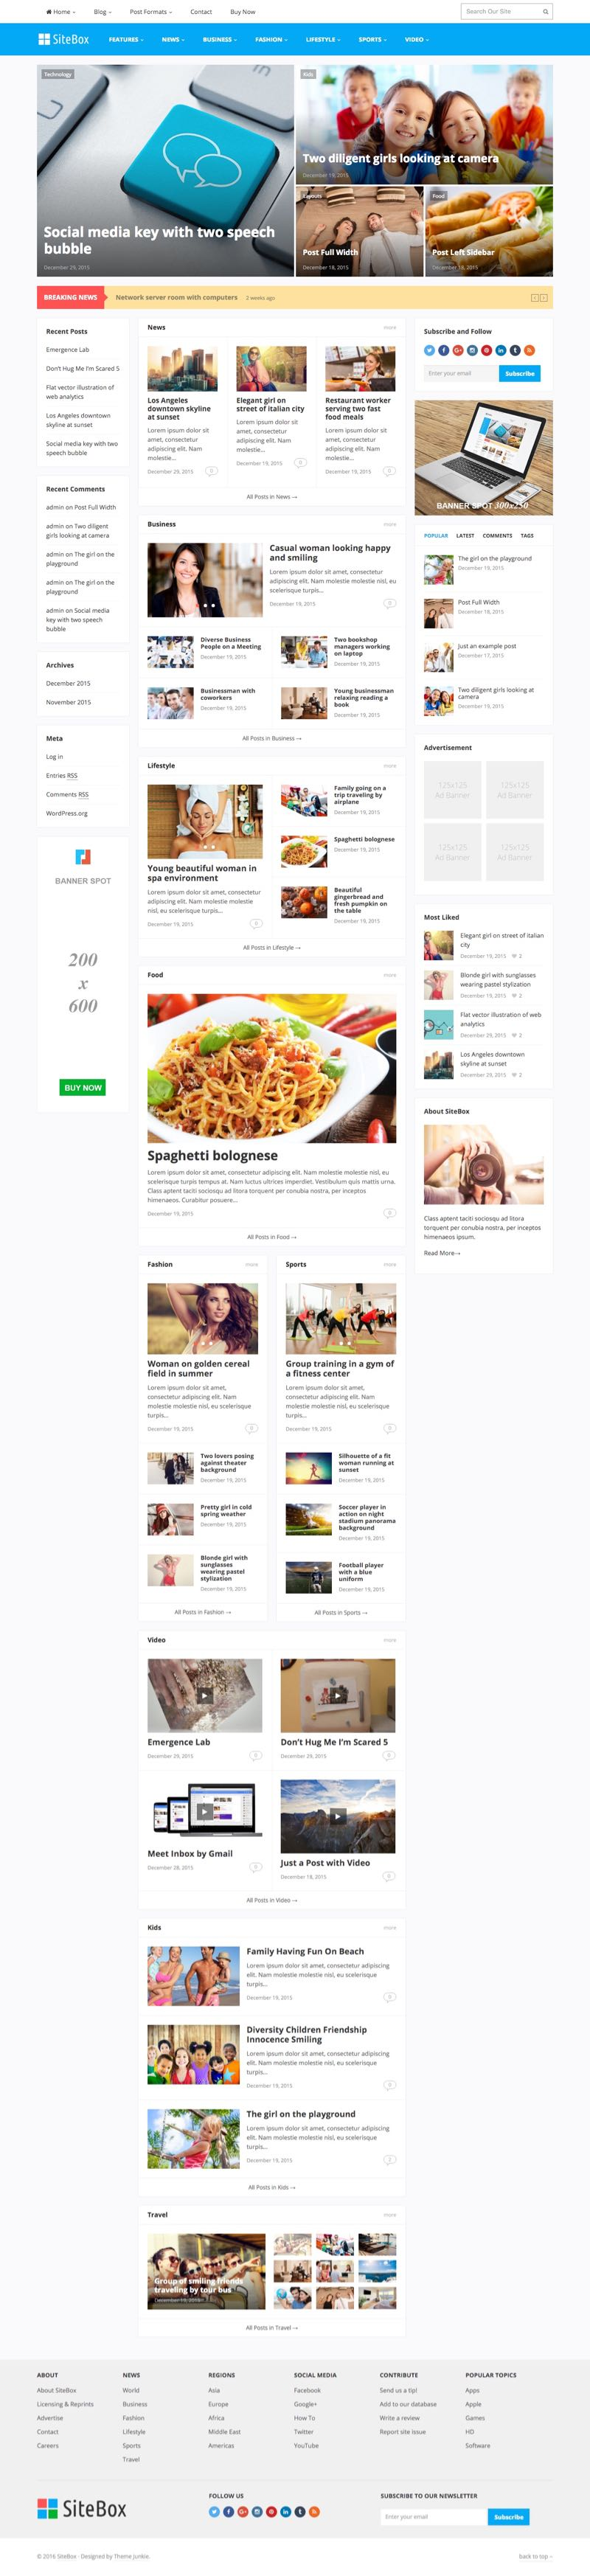 SiteBox WordPress SEO Friendly Magazine Theme